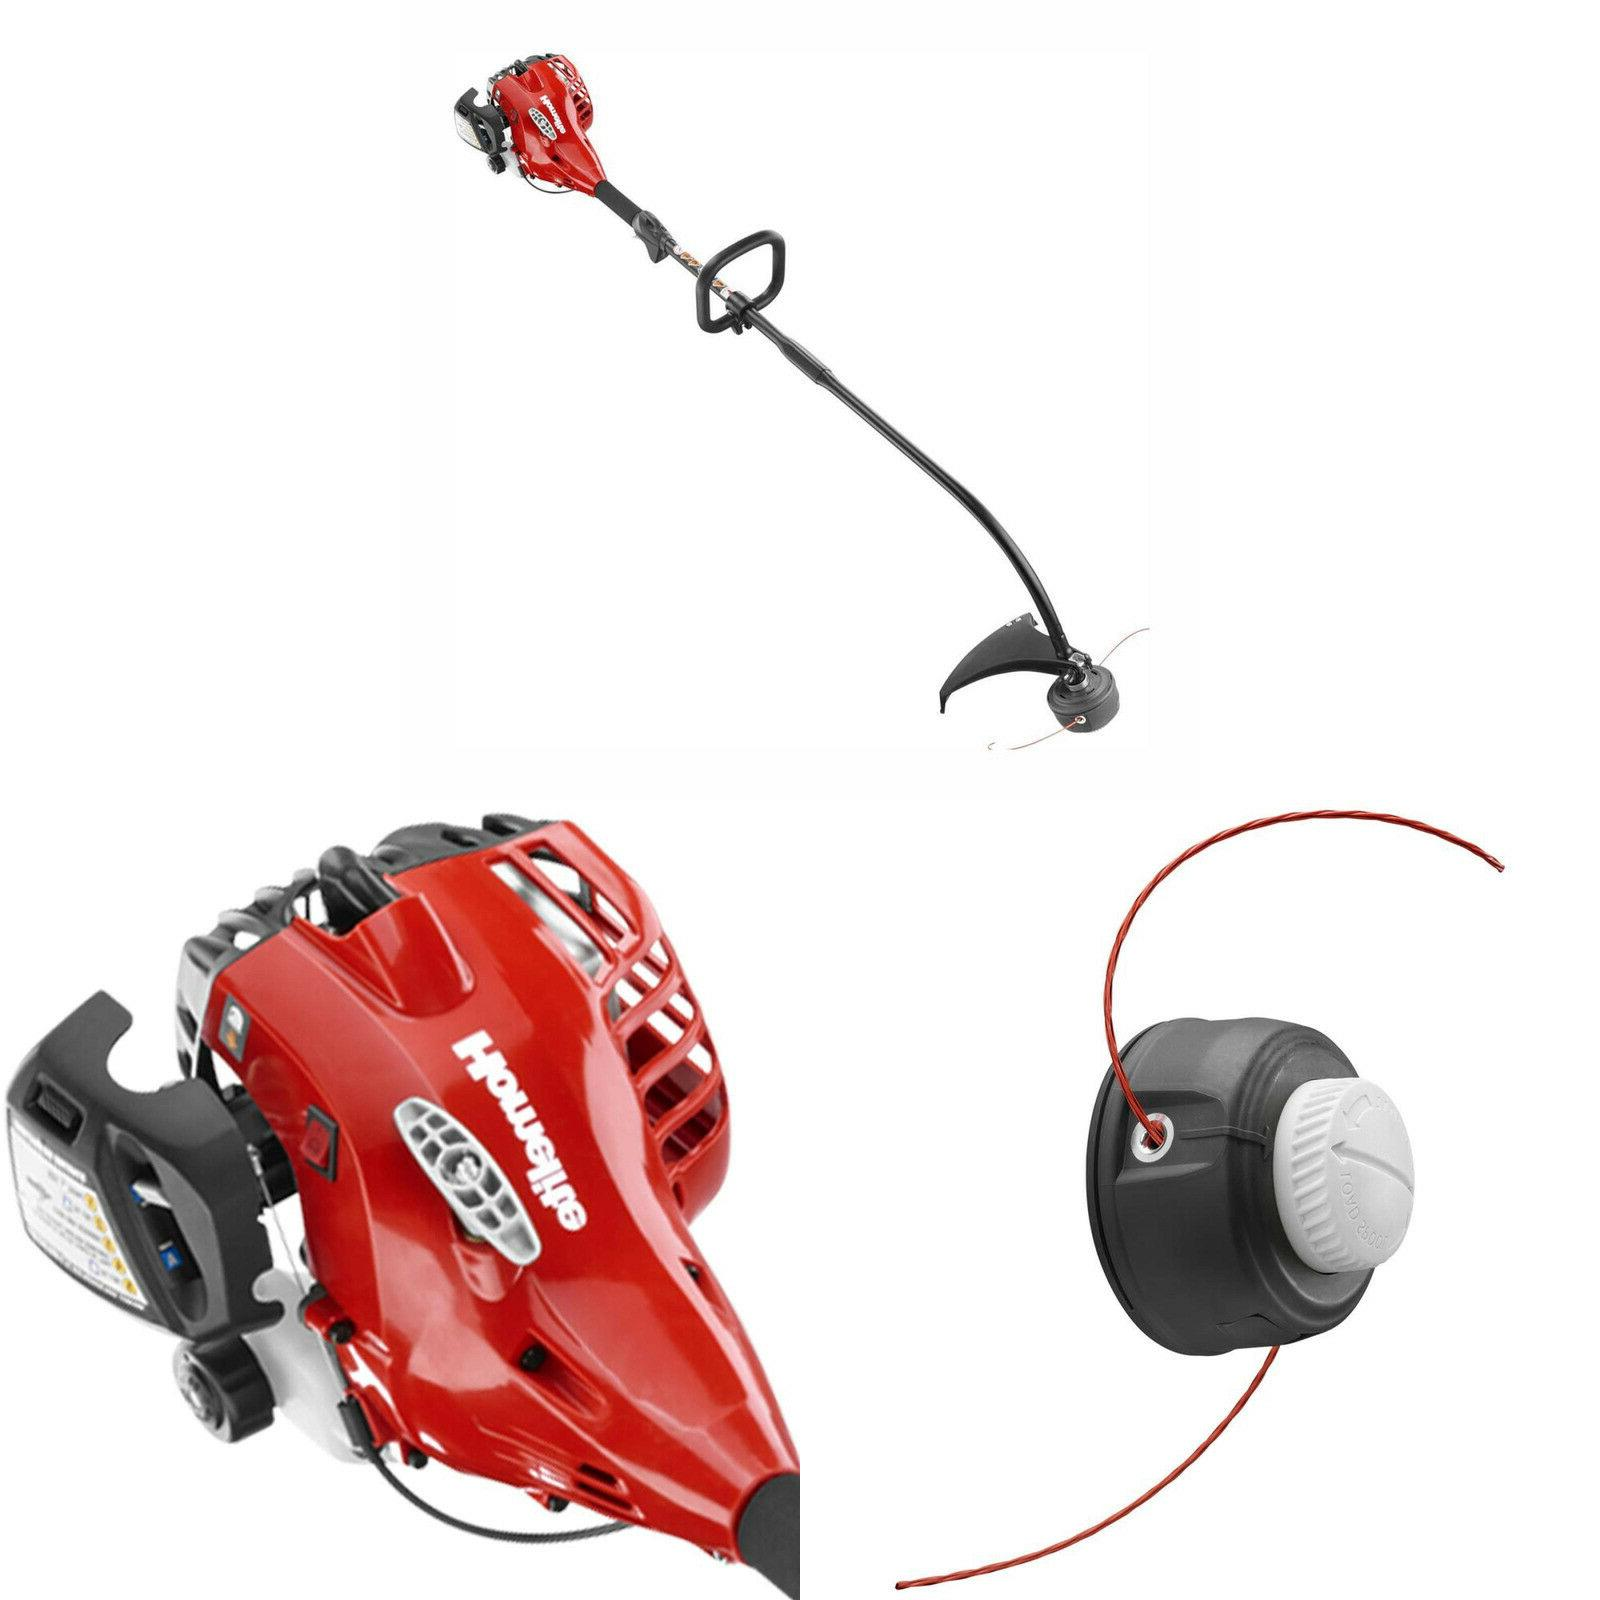 2 cycle curved shaft gas string trimmer